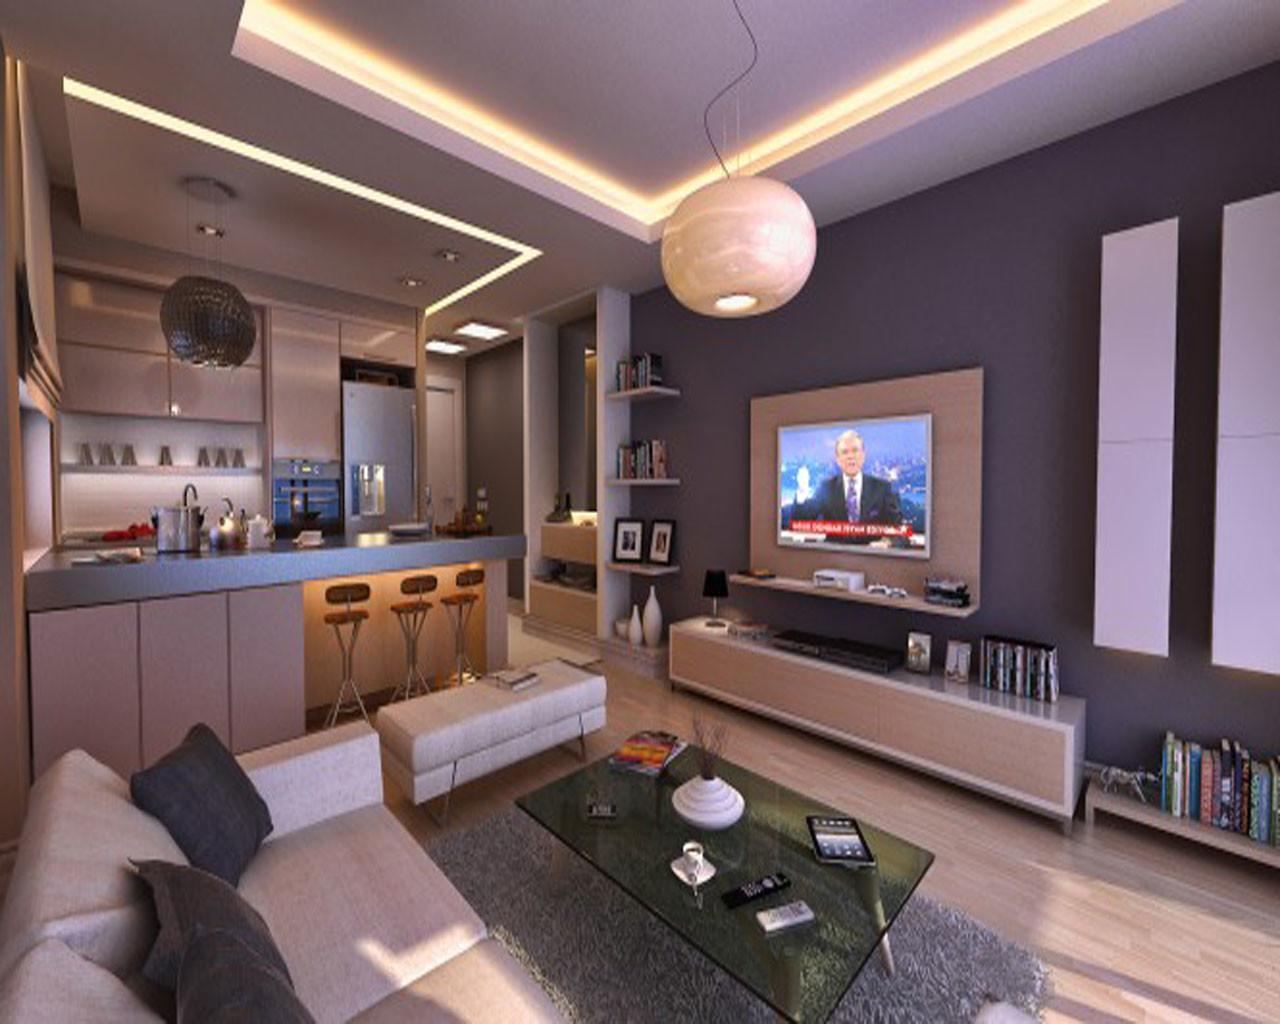 Awesome Decorating Bachelor Pad Design Ideas Hardride